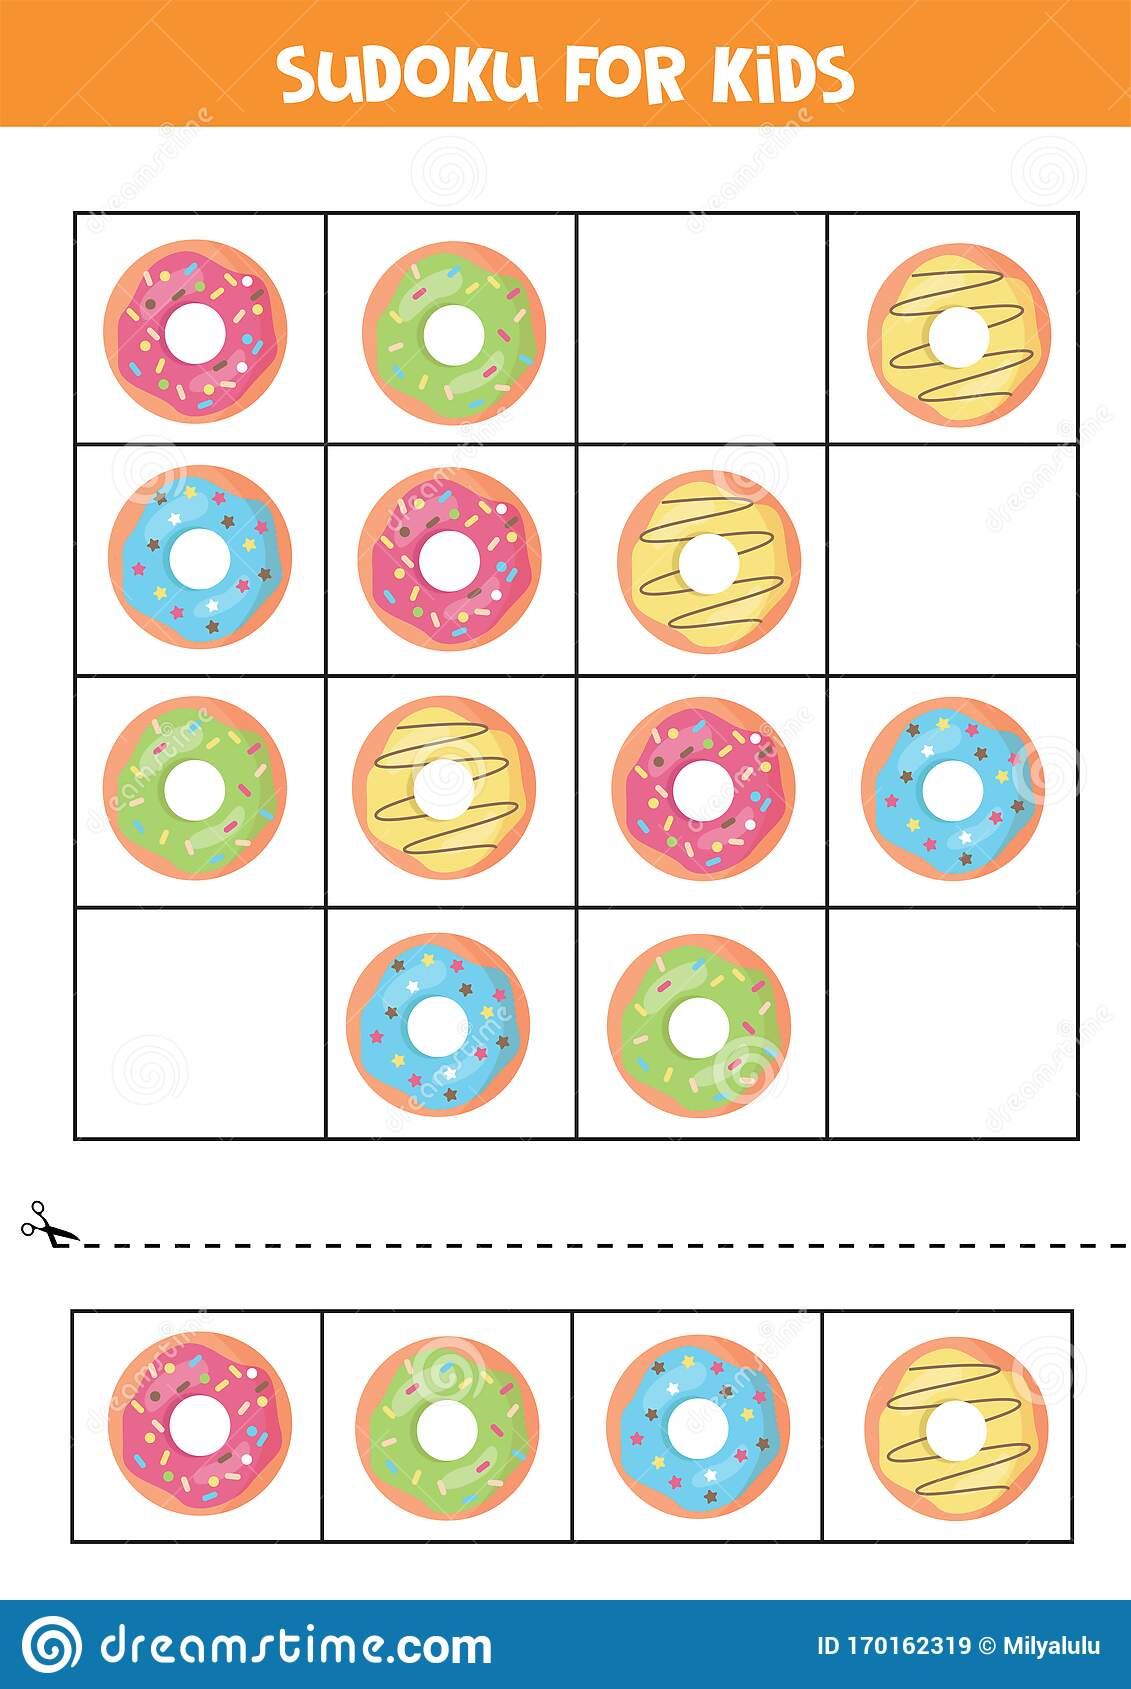 Sudoku For Kids With Cartoon Donuts Logical Game For